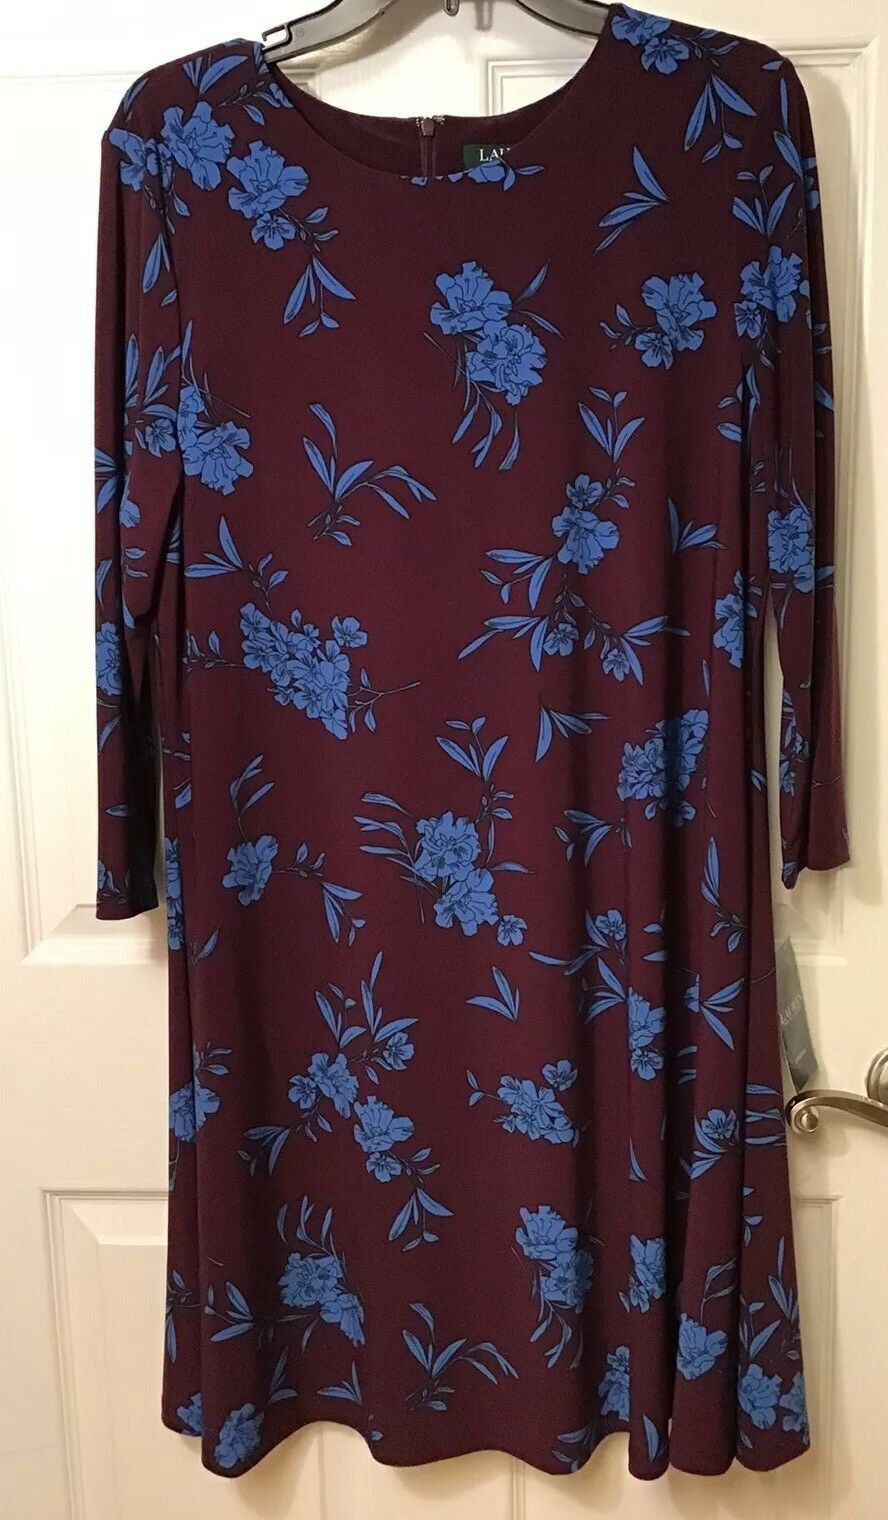 Lauren Ralph Lauren Maroon Blau Floral A-Line Shift Dress Größe 16, 3 4 Sleeves